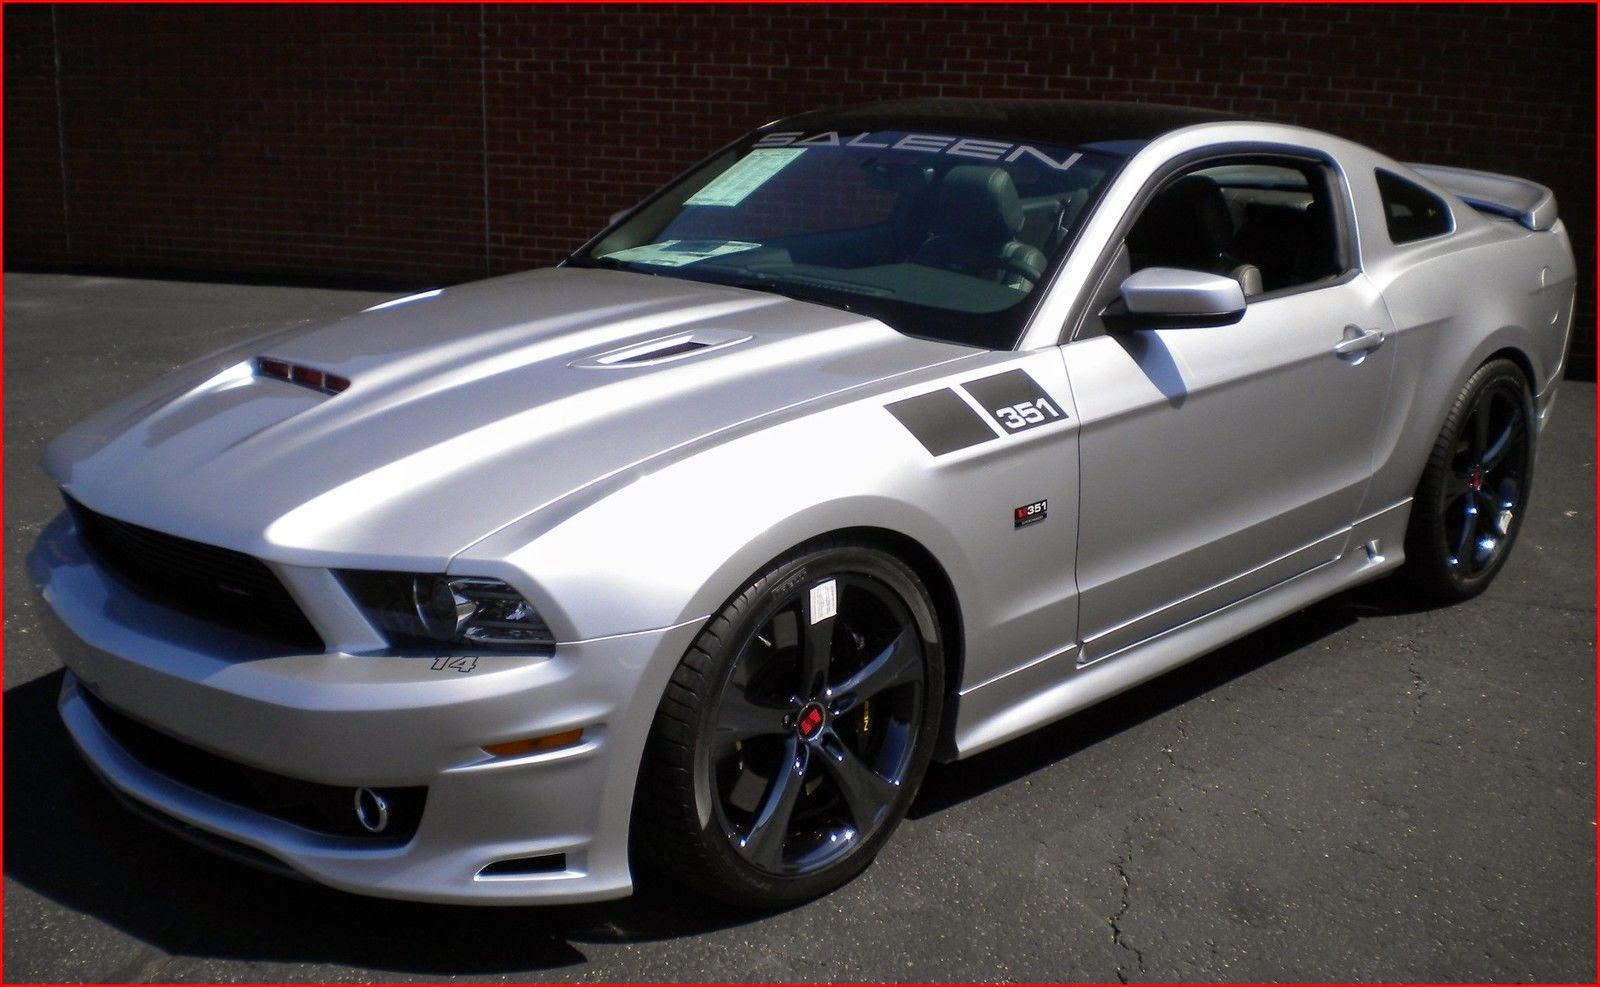 For Sale 2014 Ford Mustang Shelby GT500 Saleen 351 Extreme 700HP